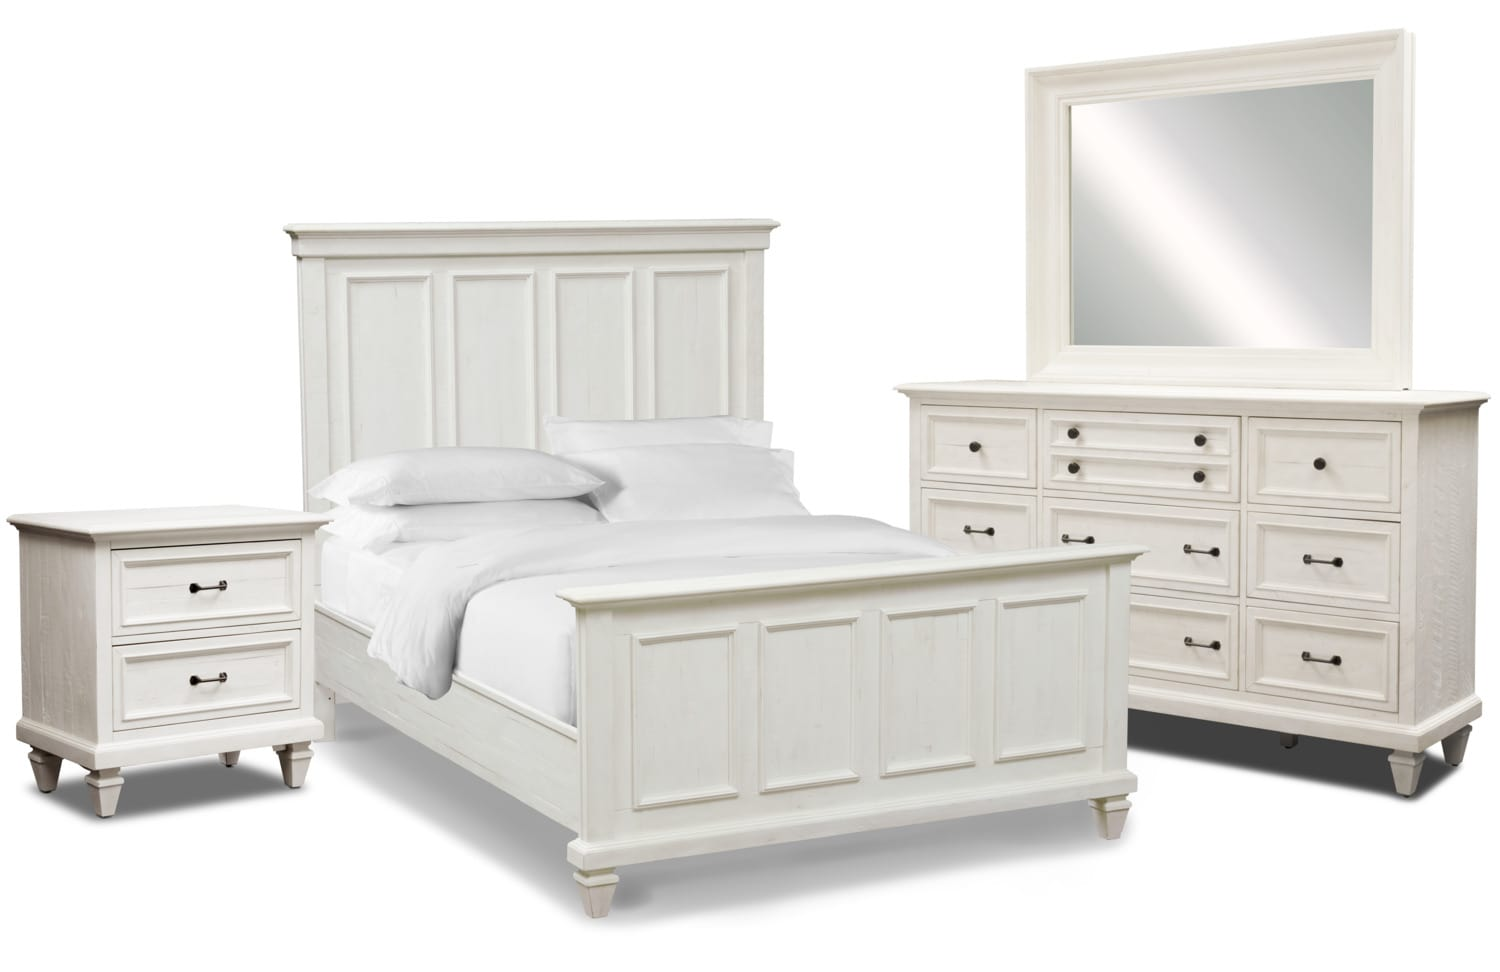 Harrison 6-Piece Bedroom Set with Nightstand, Dresser and Mirror